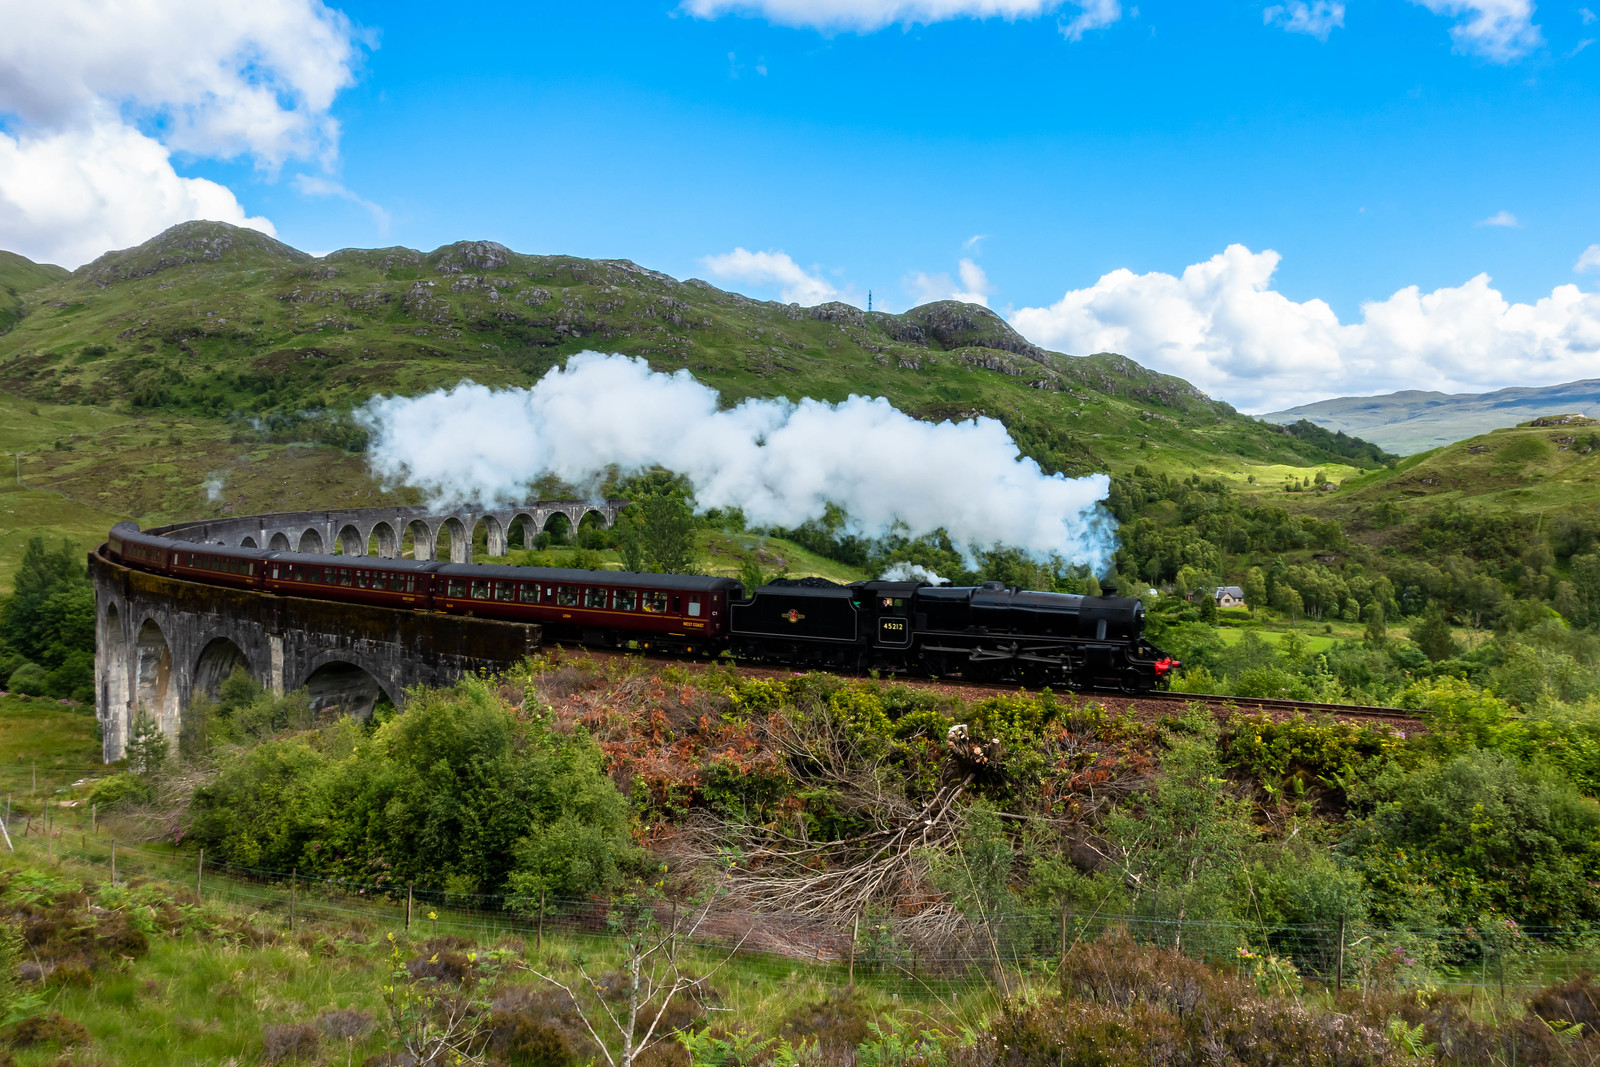 How to See the Harry Potter Train in Scotland